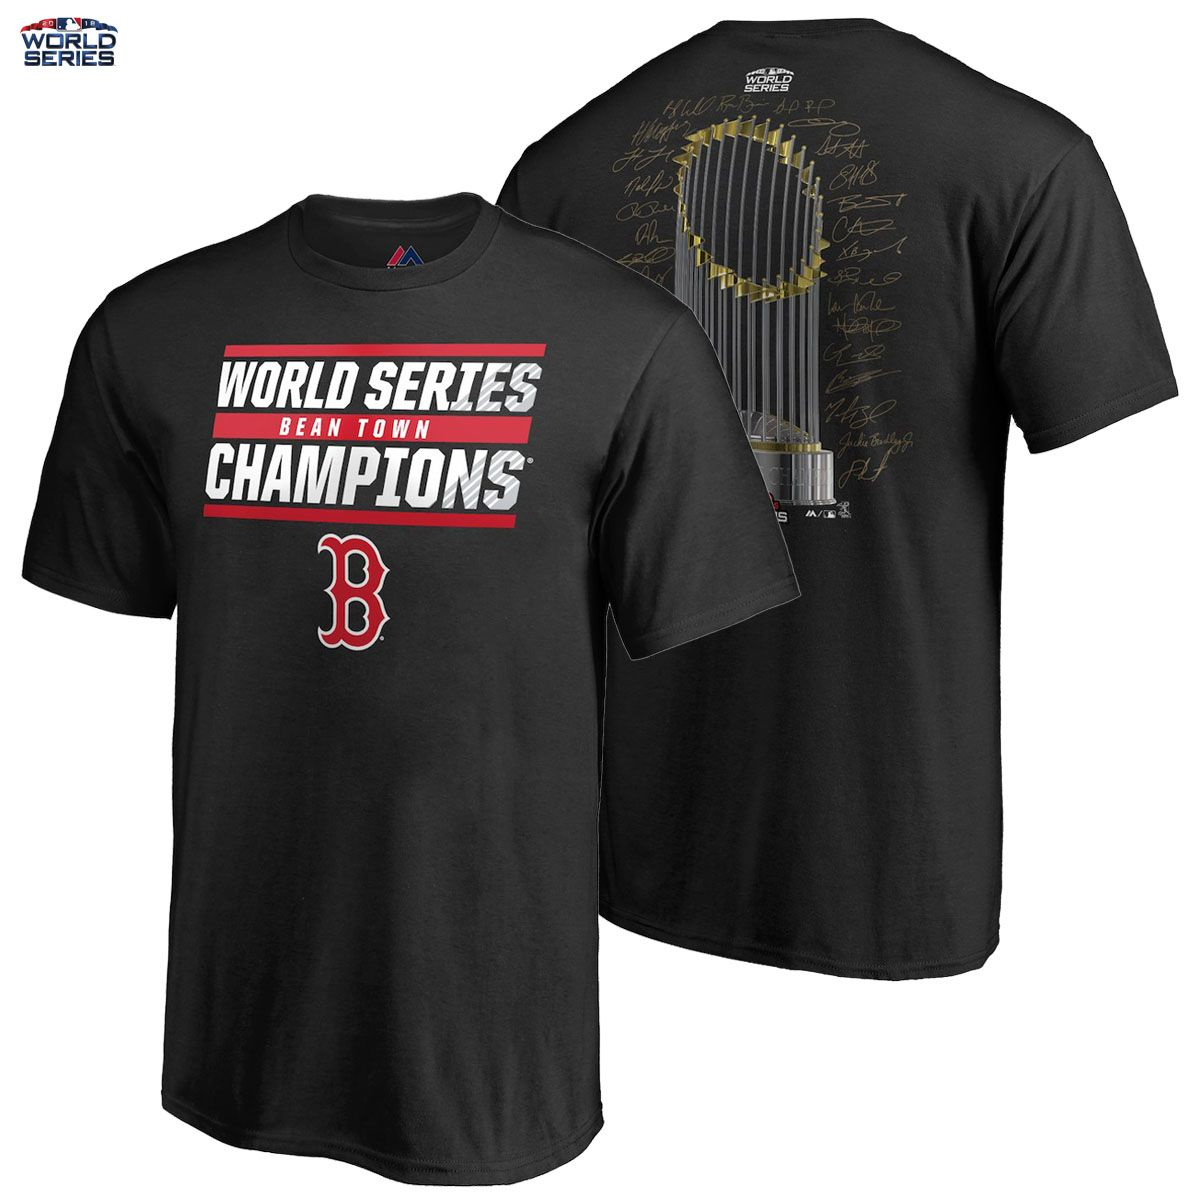 12c3093f Boston Red Sox 2018 World Series Champions Majestic T-Shirt Signature  Roster MLB THEY HAVE DONE IT!! Your Boston Red Sox are 2018 World Series  Champions, ...